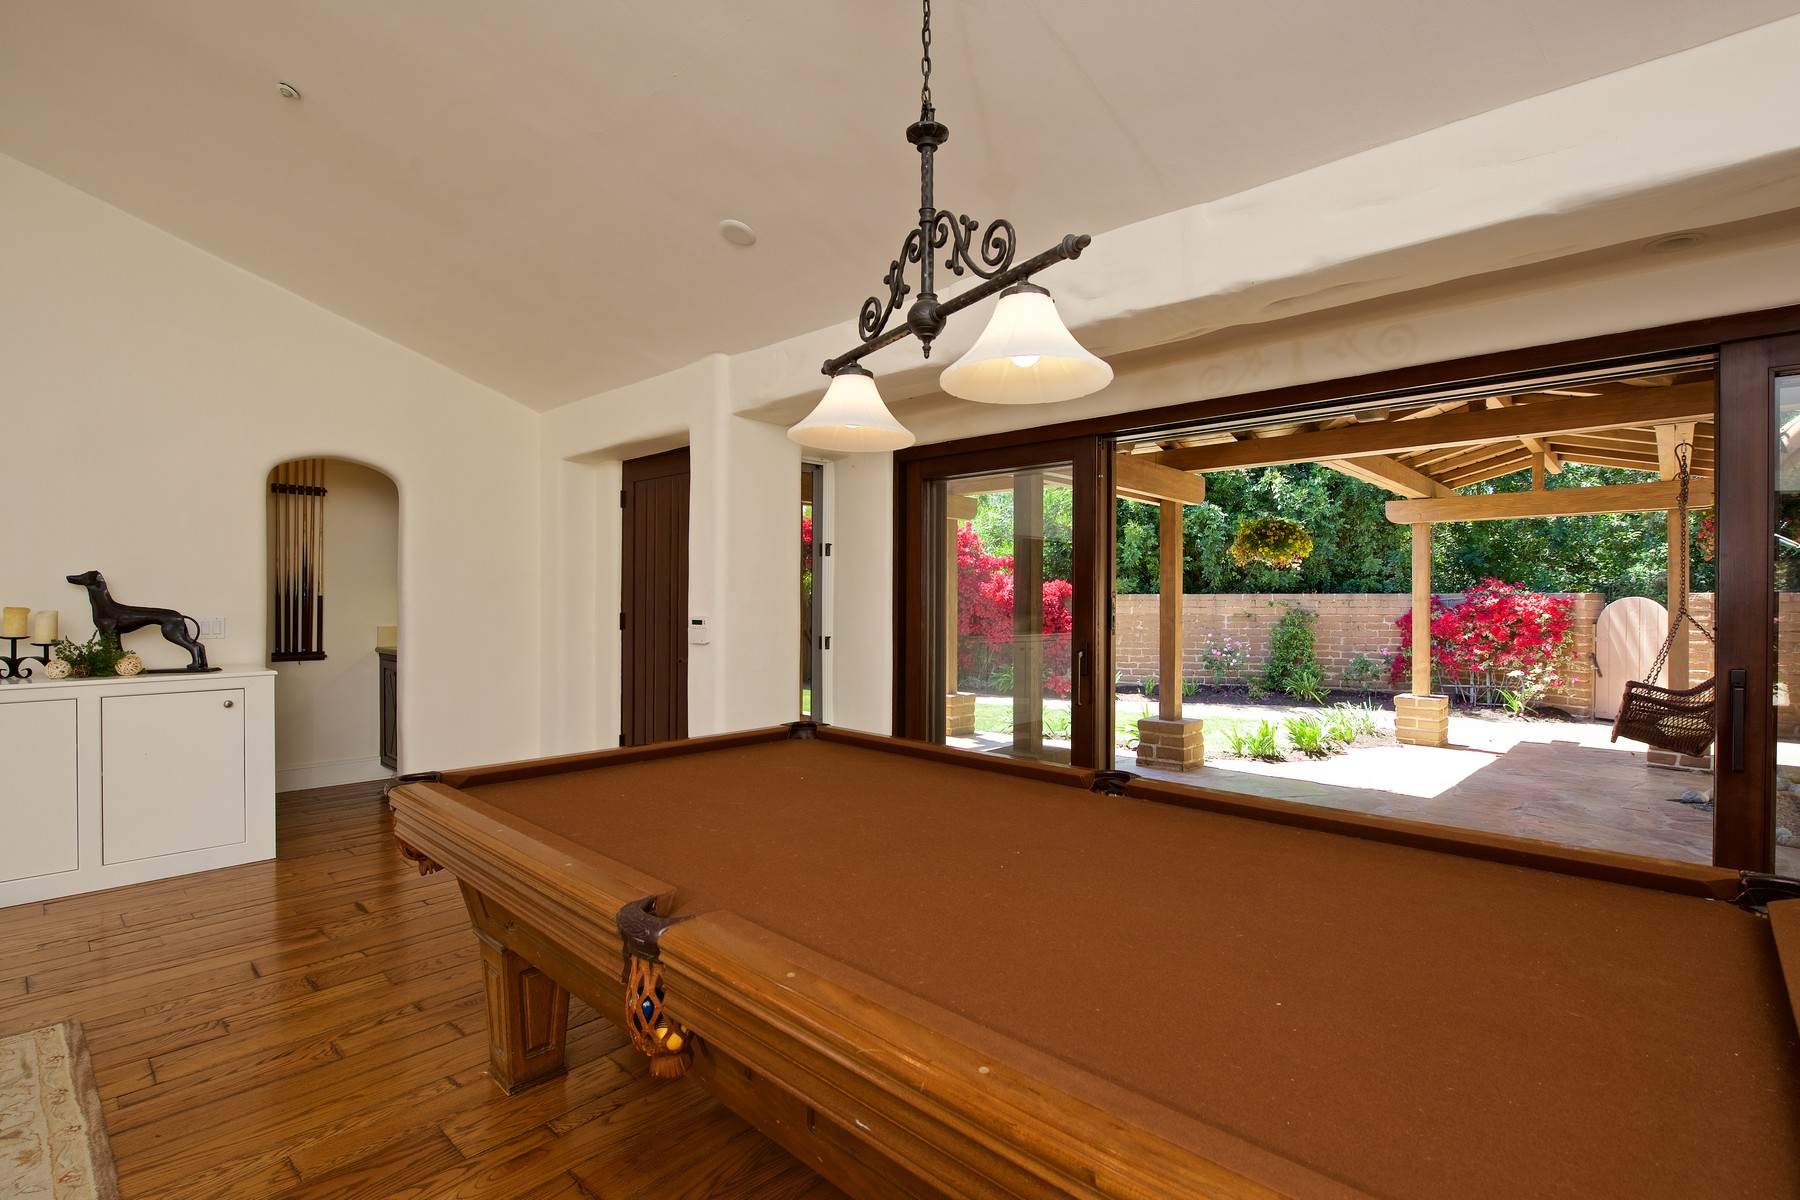 Additional photo for property listing at 6083 Mimulus  Rancho Santa Fe, Калифорния 92067 Соединенные Штаты